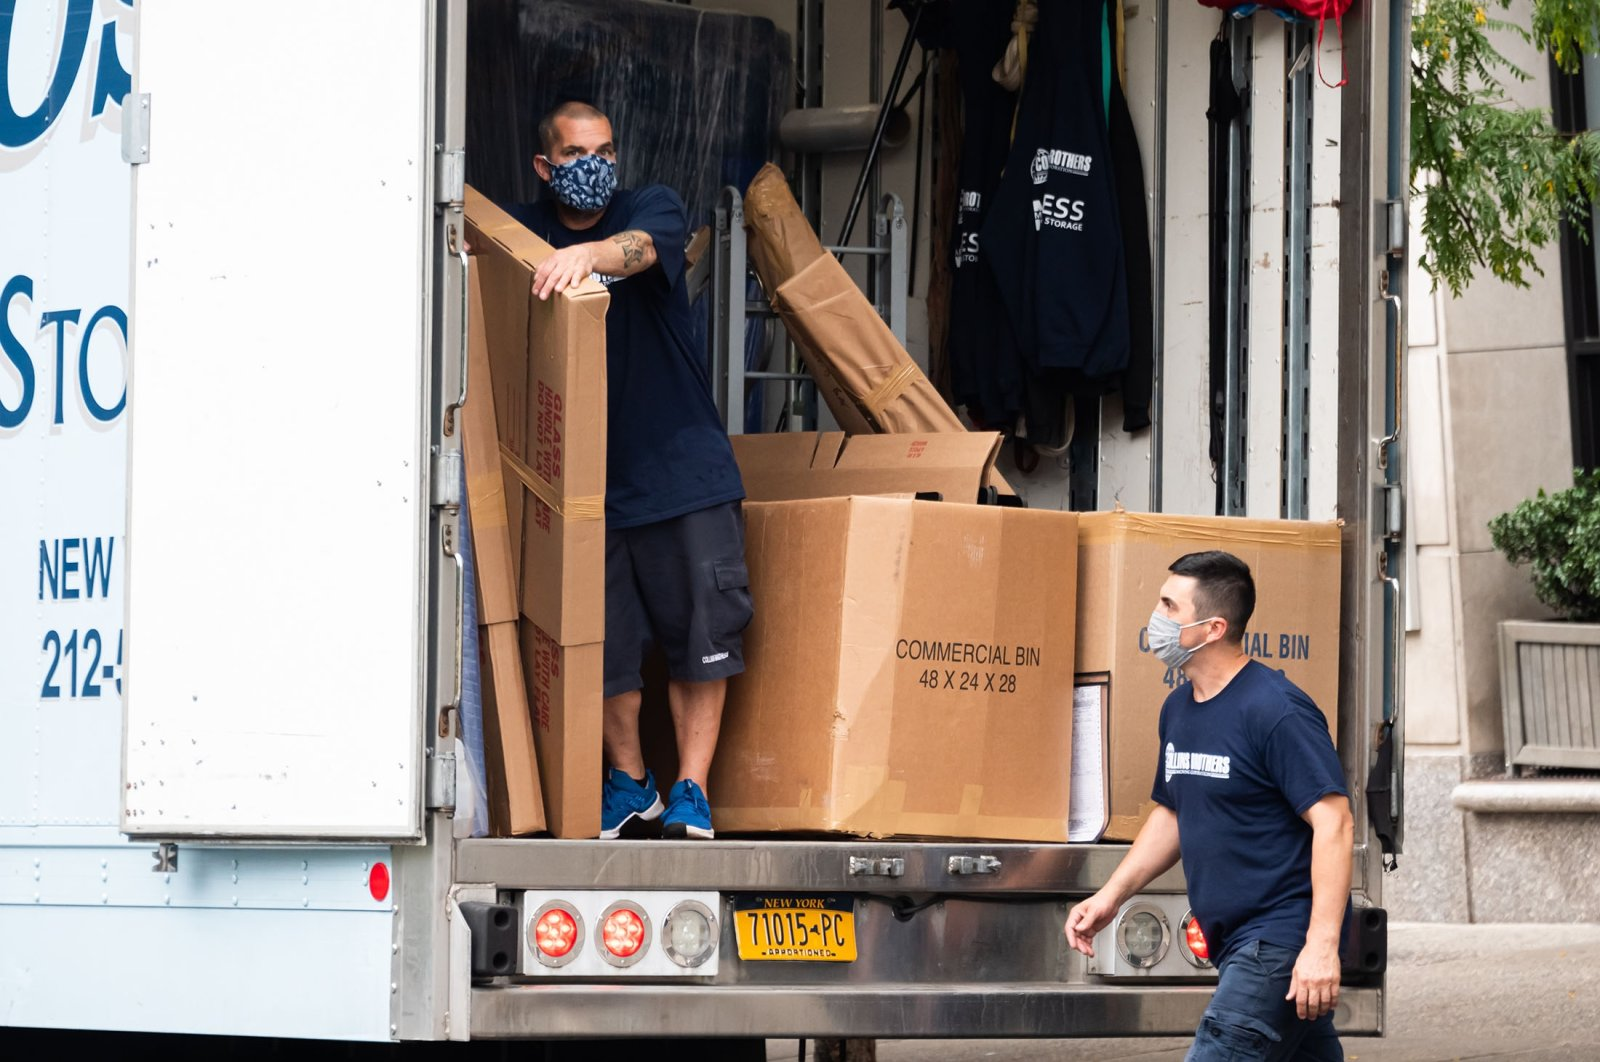 Movers unload a truck in Union Square as the city continues Phase 4 of re-opening following restrictions imposed to slow the spread of coronavirus on September 29, 2020, in New York City. (Getty Images)